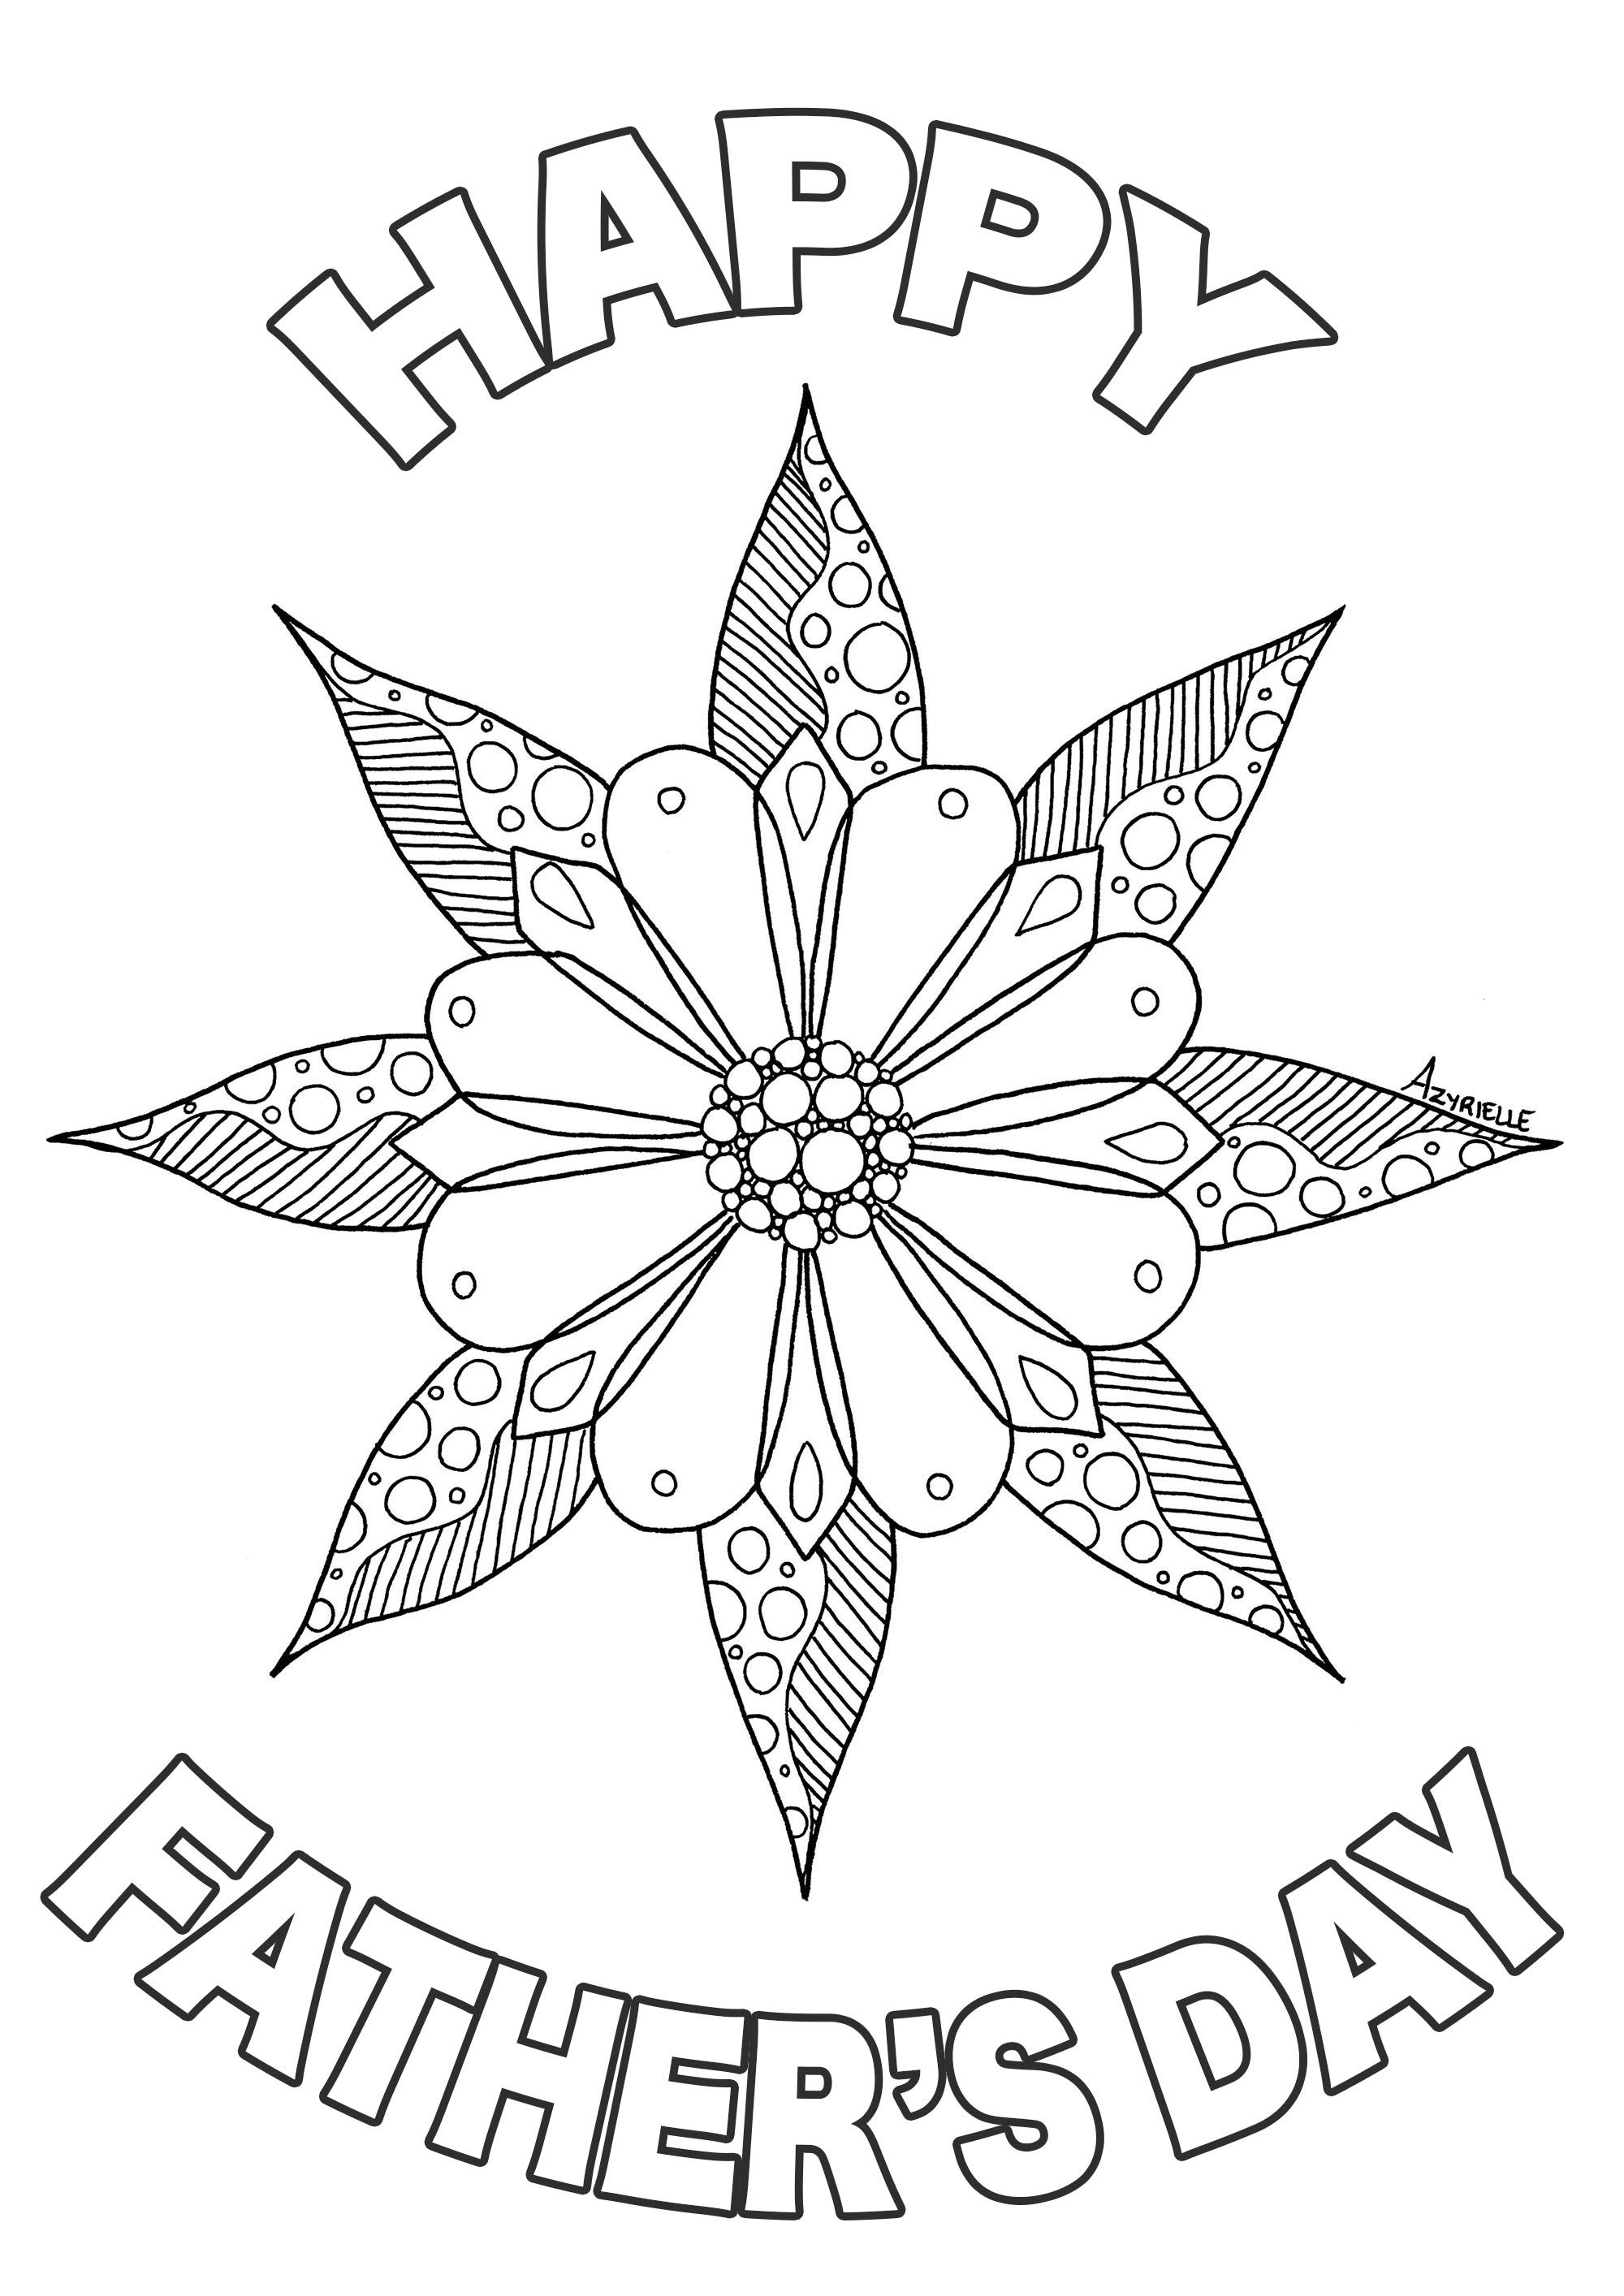 Happy Father S Day Coloring Page Beautiful Flower Mothers Day Coloring Pages Fathers Day Coloring Page Mothers Day Coloring Sheets [ 2828 x 2000 Pixel ]